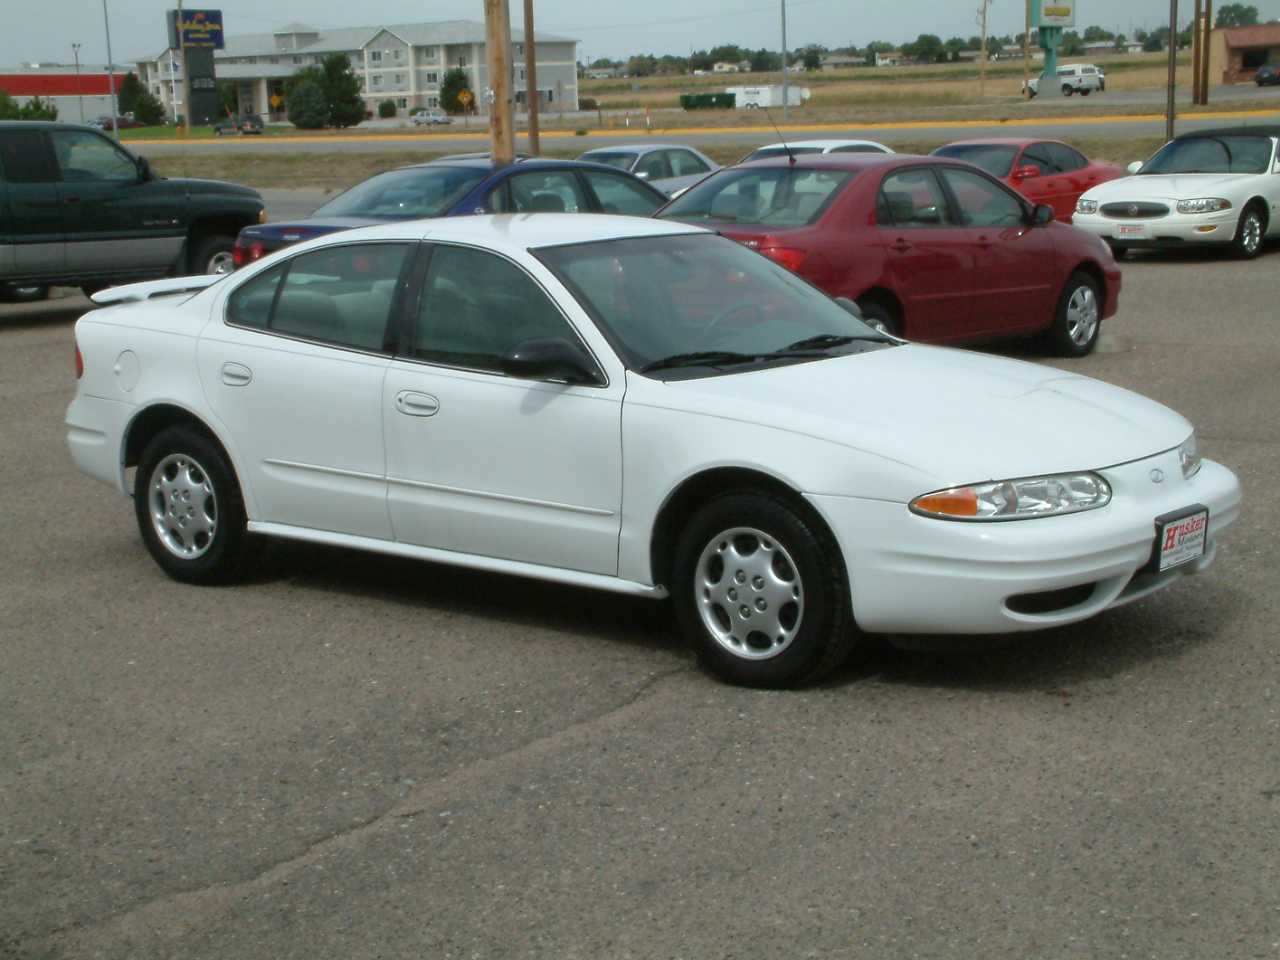 Oldsmobile alero pictures information and specs auto database oldsmobile alero pictures 5 sciox Image collections